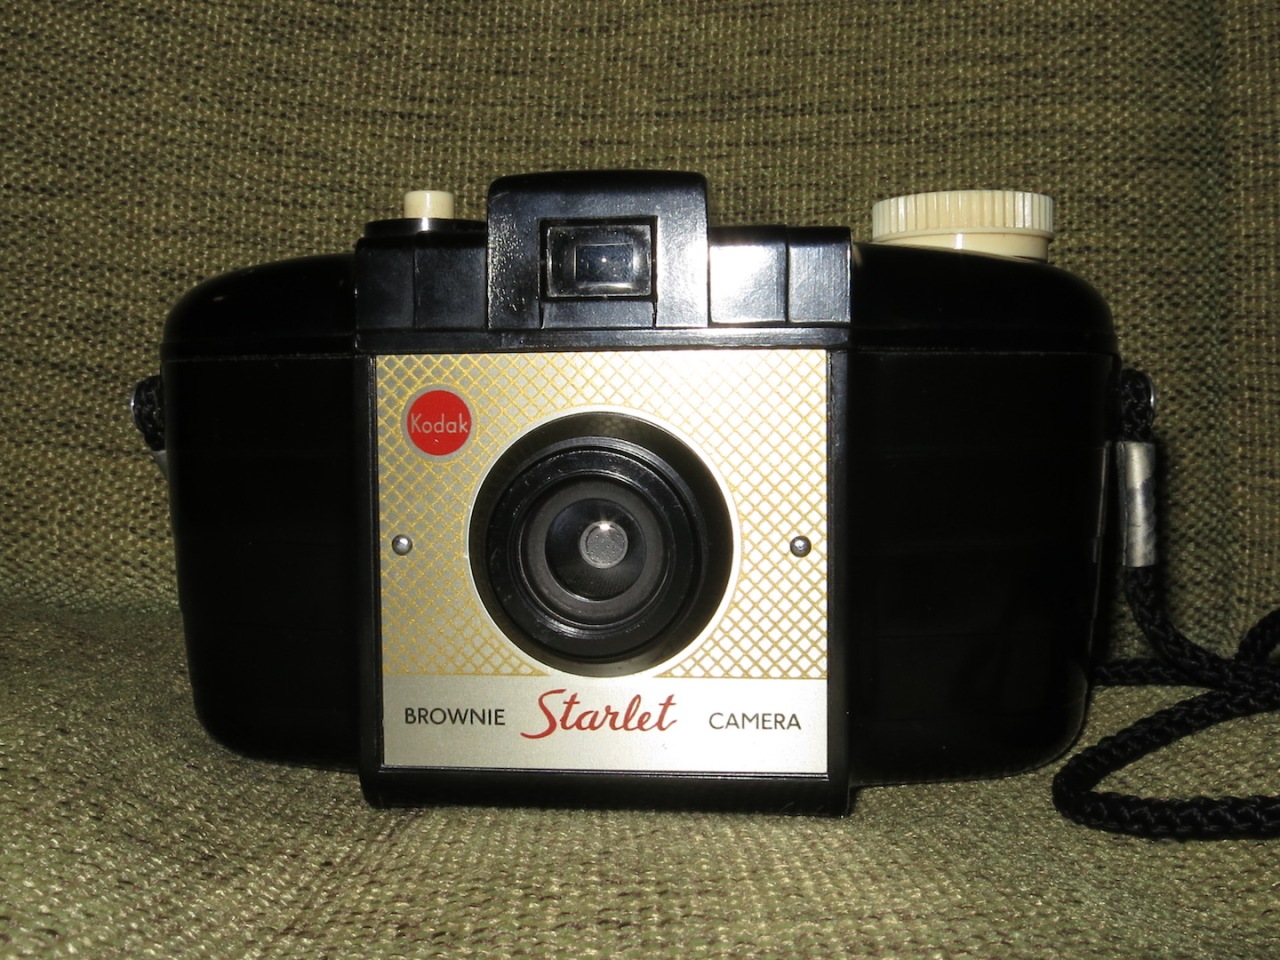 Kodak Brownie 127 Starlet